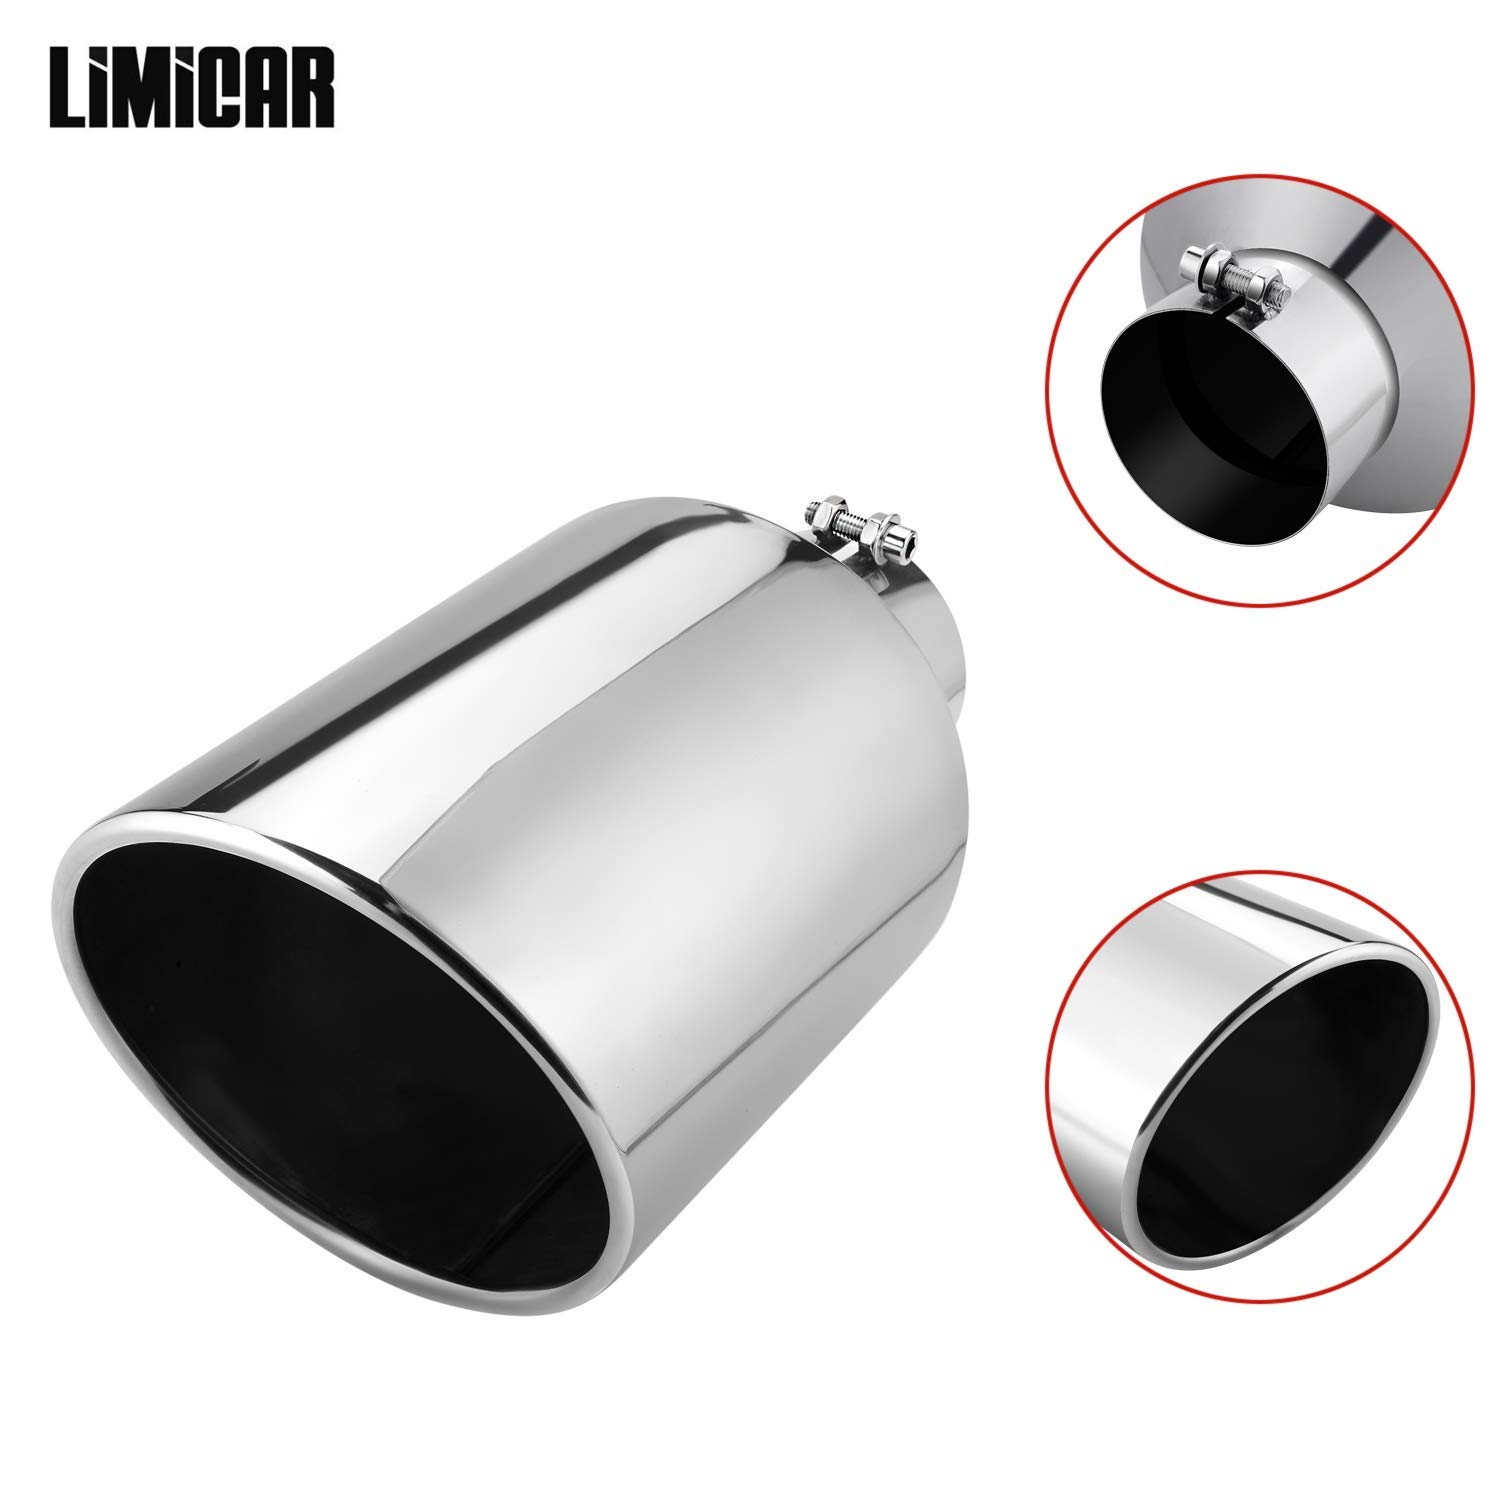 LIMICAR Diesel Exhaust Tip 5 Inlet 10 Outlet 15 Long Exhaust Tailpipe Tip Clamp On Design Stainless Steel Bolt-On Angle Cut Universal For Trucks Car